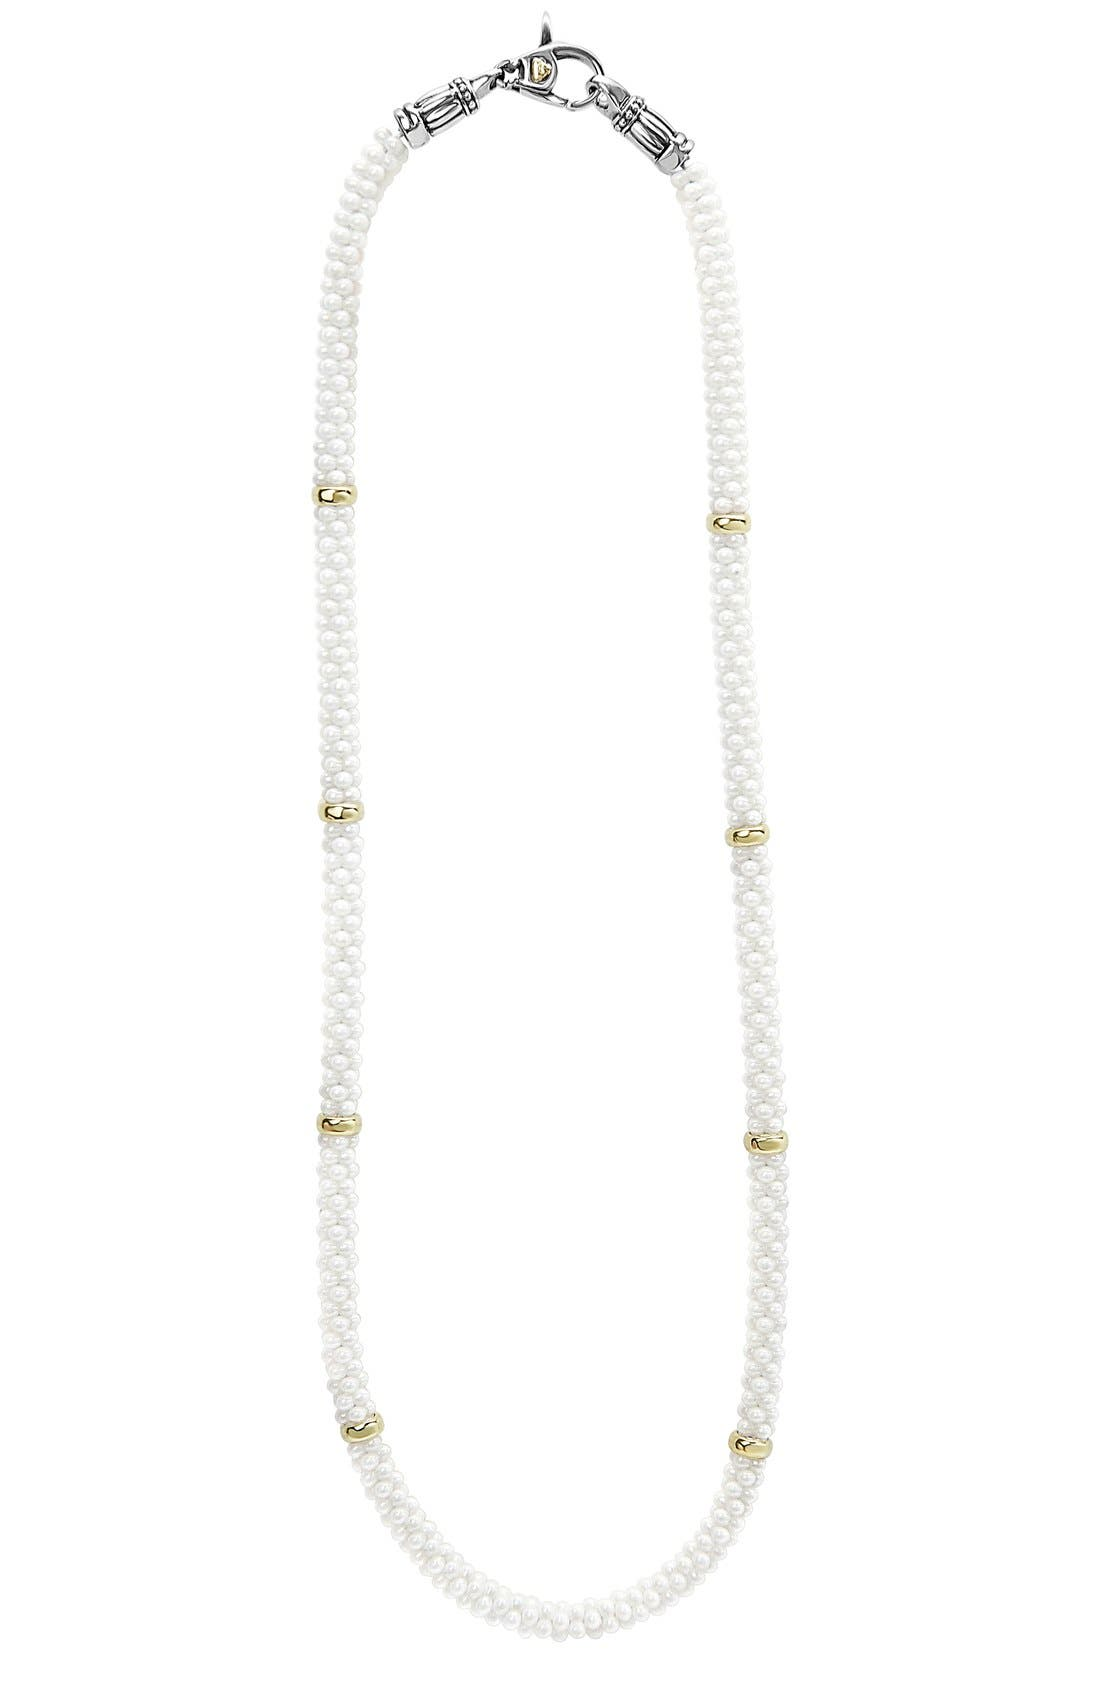 'White Caviar' 5mm Beaded Station Necklace,                             Main thumbnail 1, color,                             WHITE CAVIAR